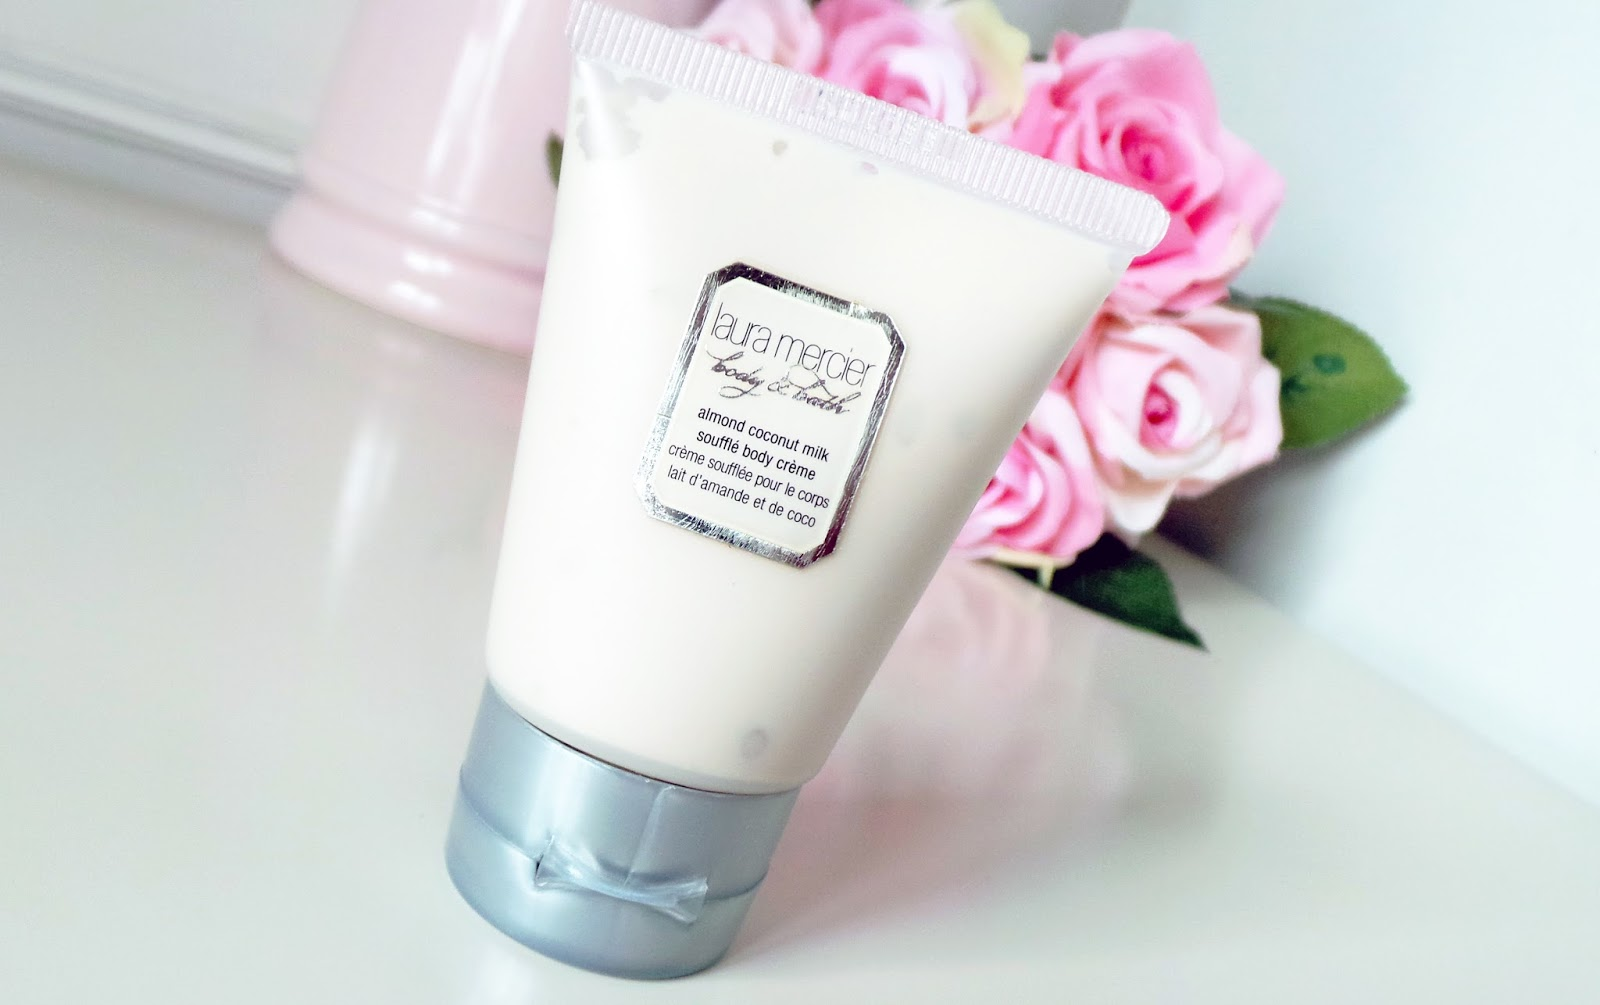 birchbox Laura Mercier Almond Coconut Milk Soufflé Body Cremé beauty blog review